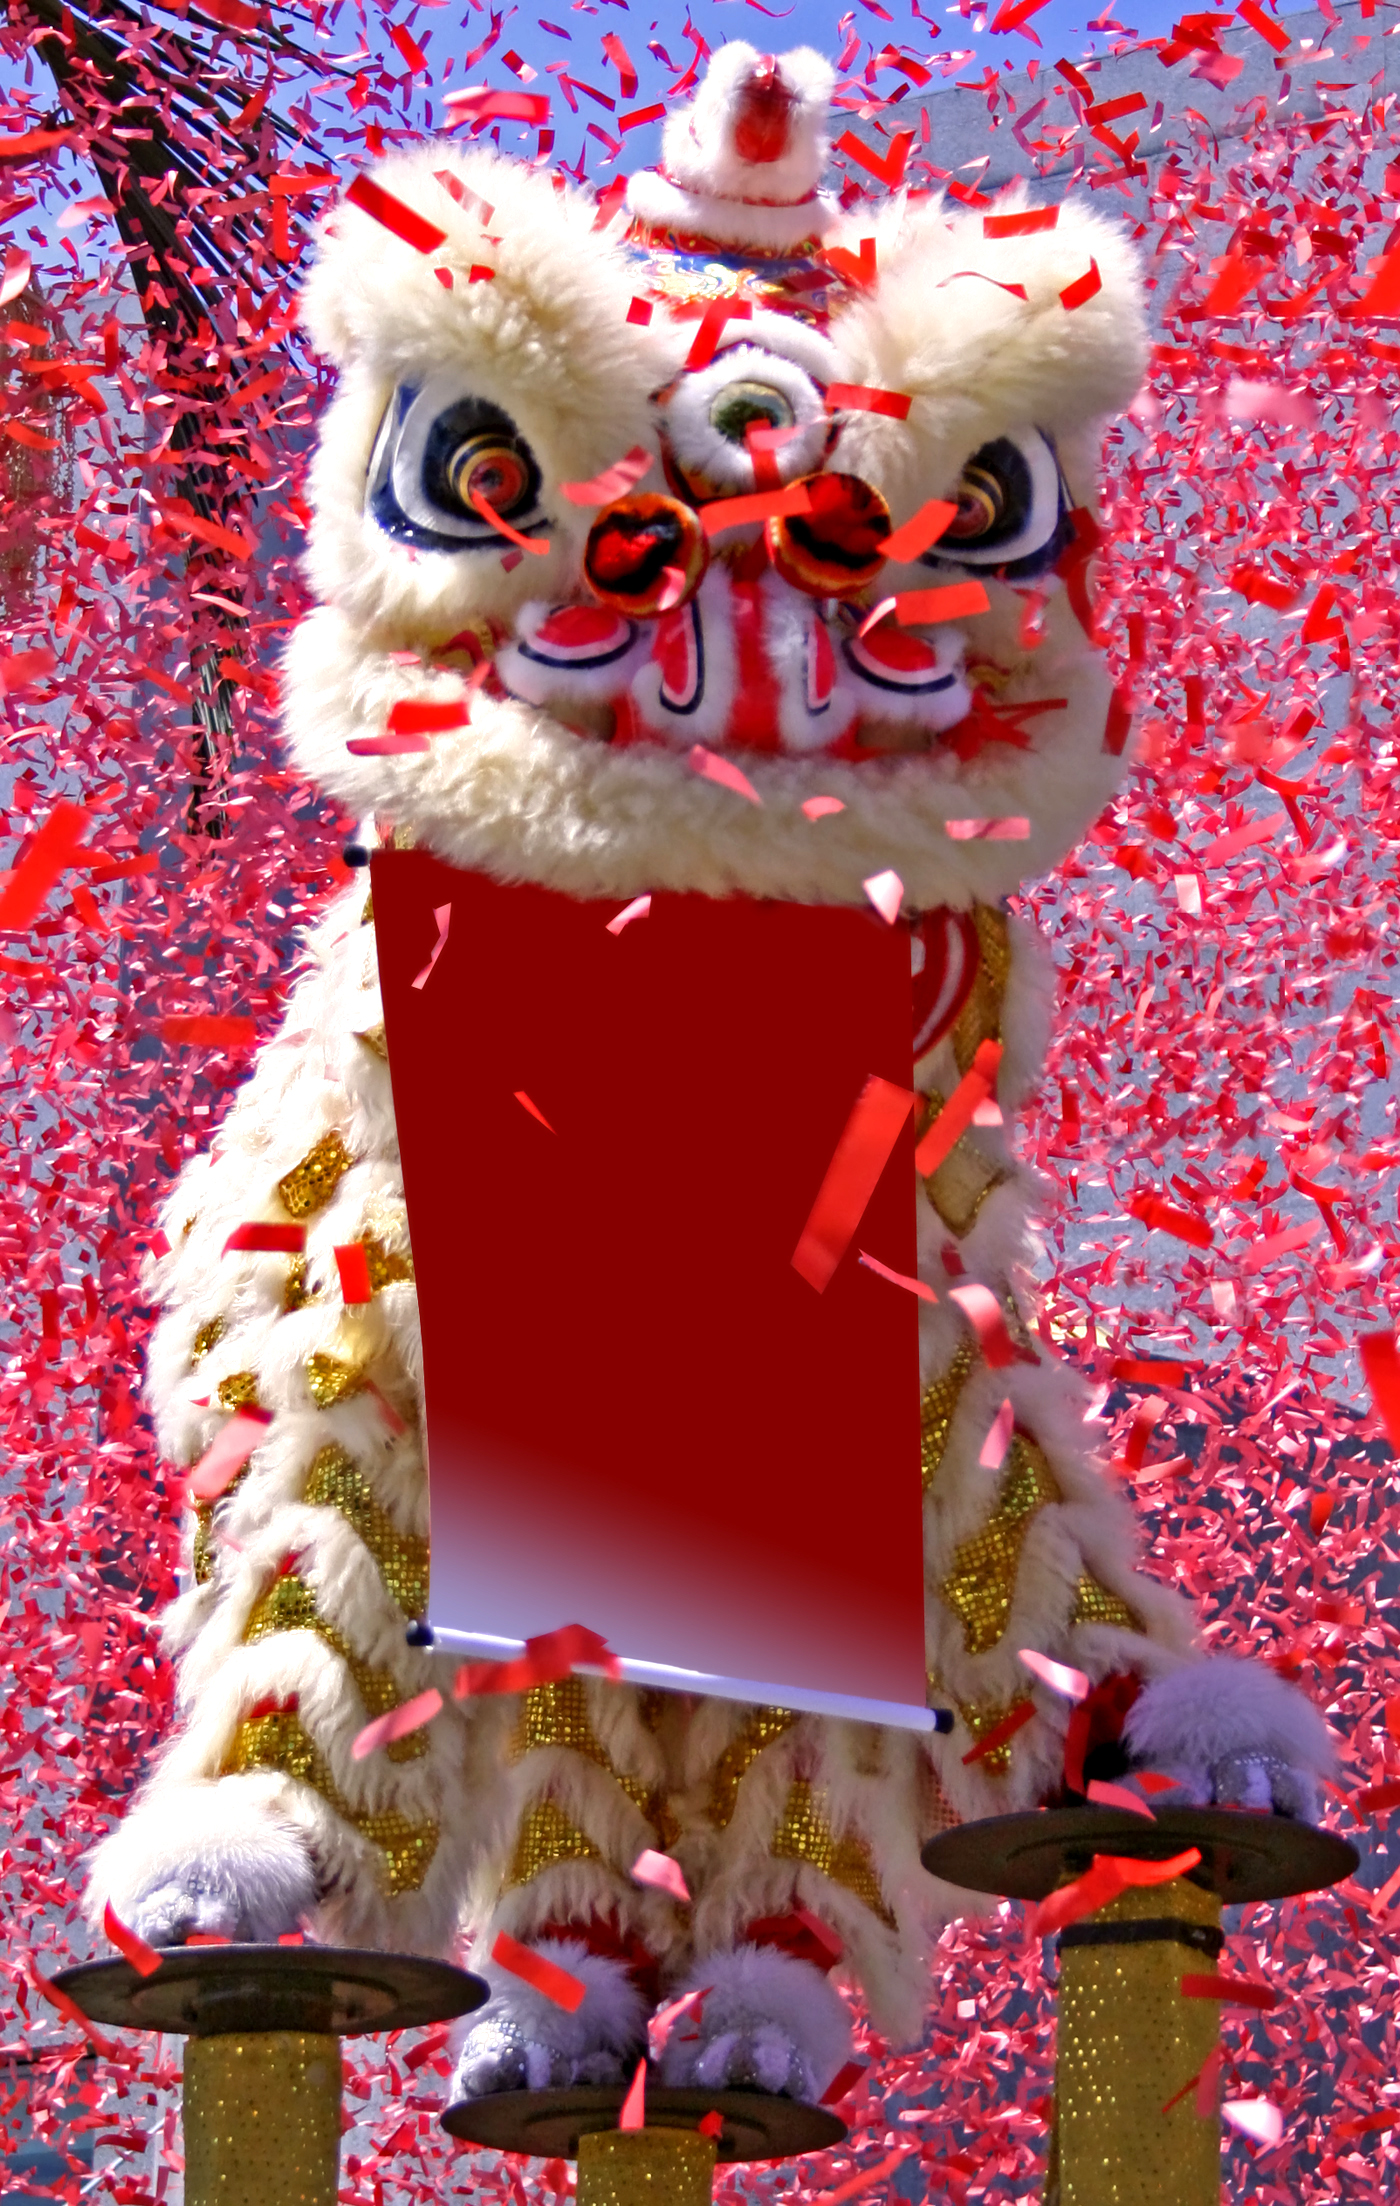 Uncategorized Chinese New Year Lion chinese new year rice paper kite a festive lion dance during parade